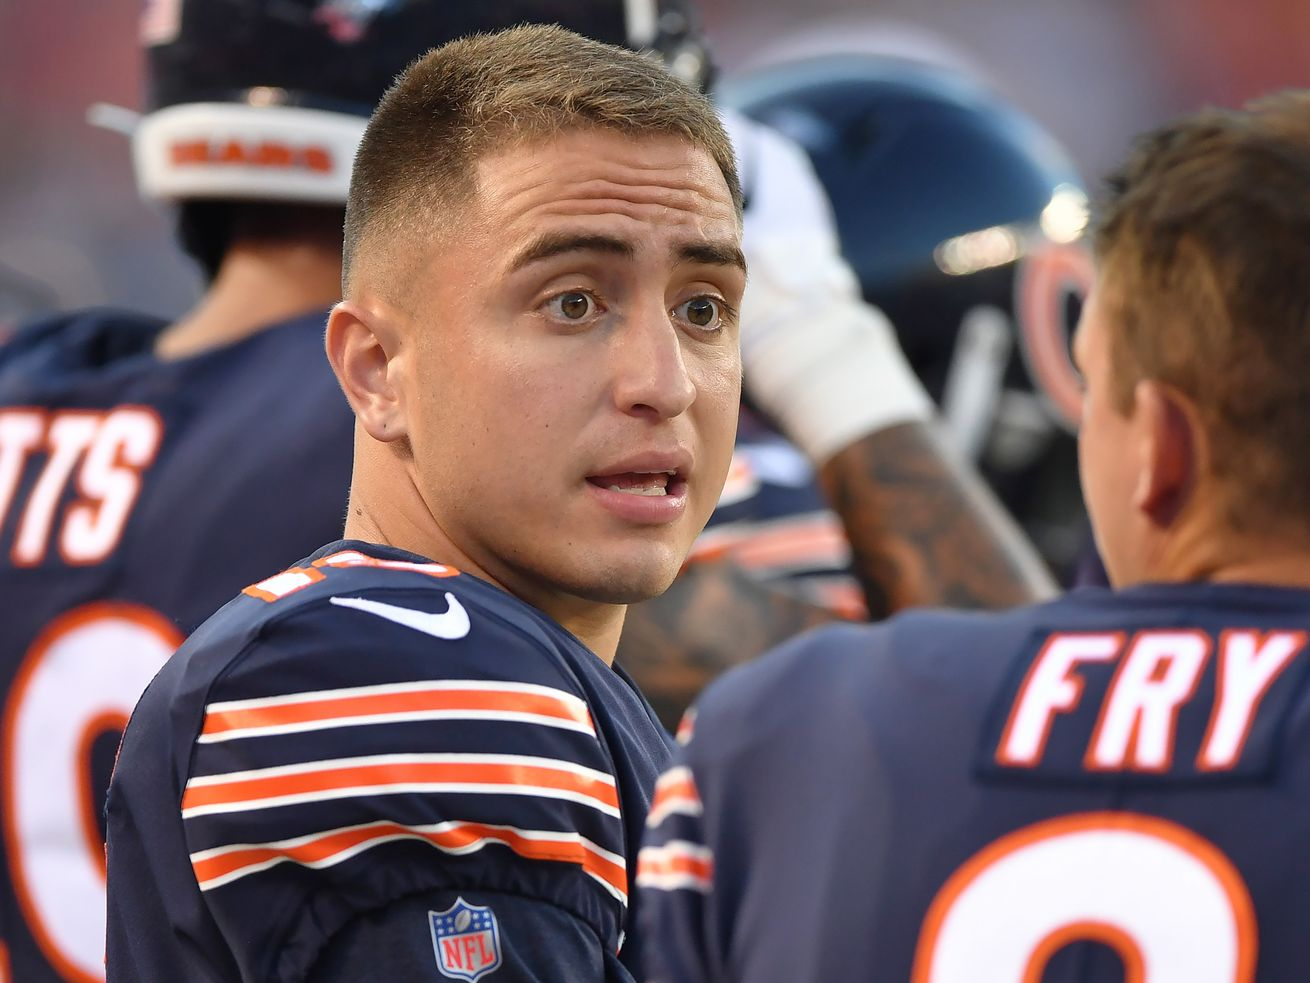 Bears put kicker Eddy Pineiro on injured reserve; Cairo Santos to kick vs. Lions